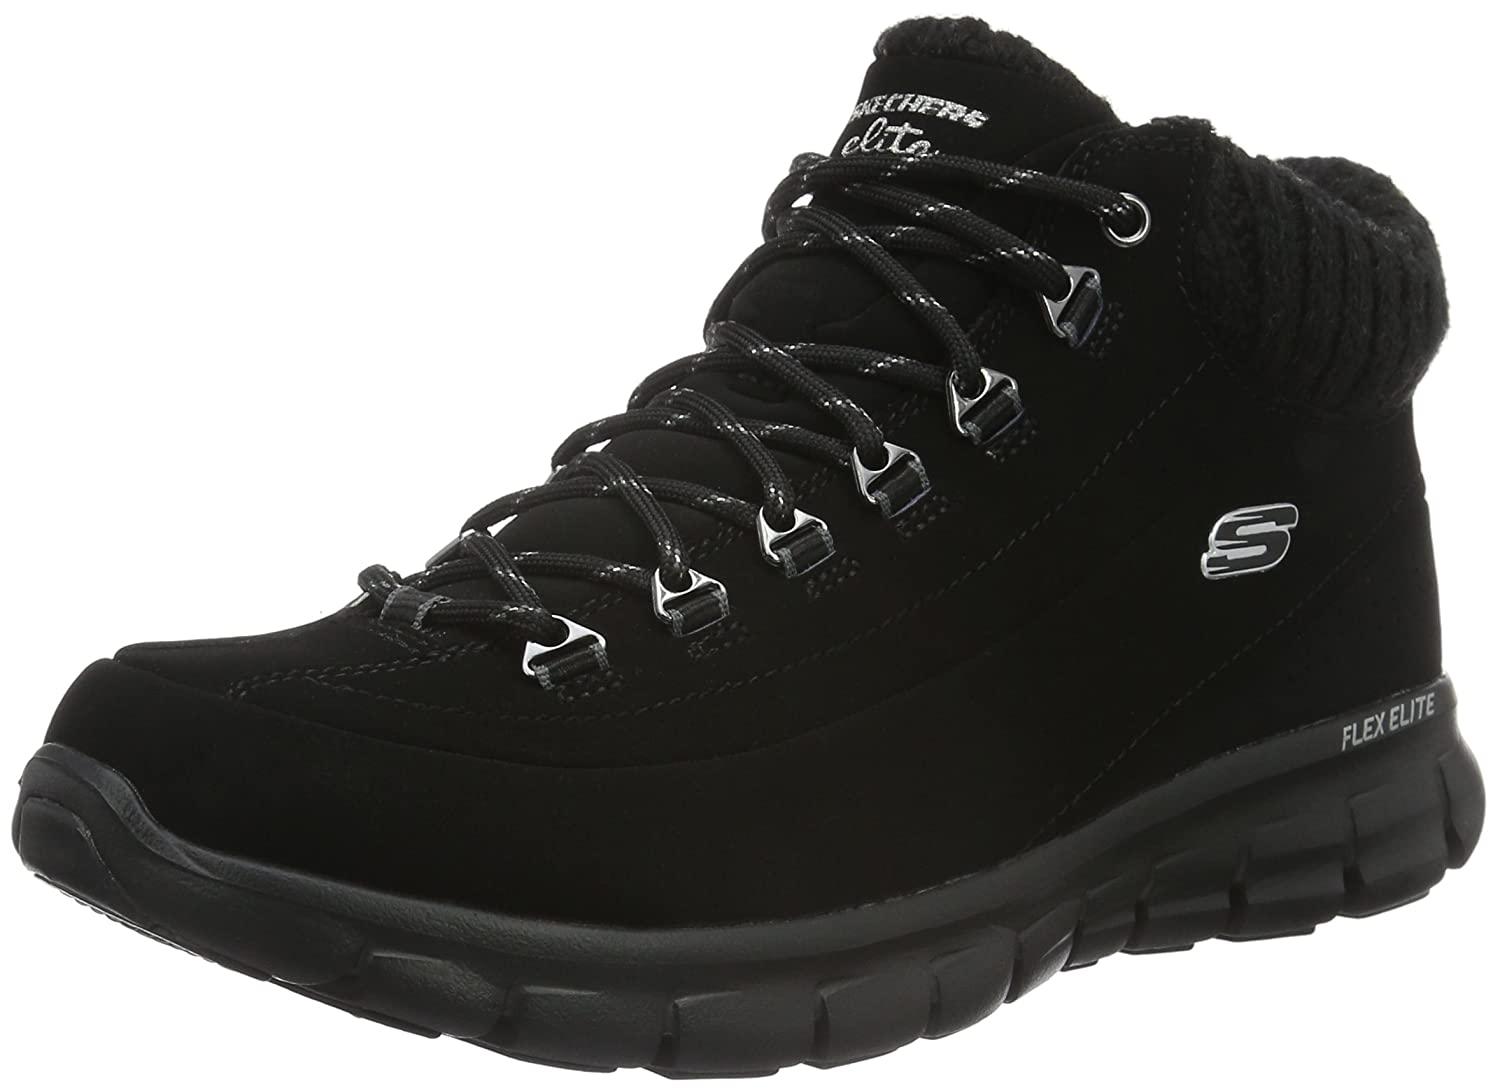 Skechers Damen Synergy Winter Nights Kurzschaft Stiefel  39 EU|Schwarz (Bbk)